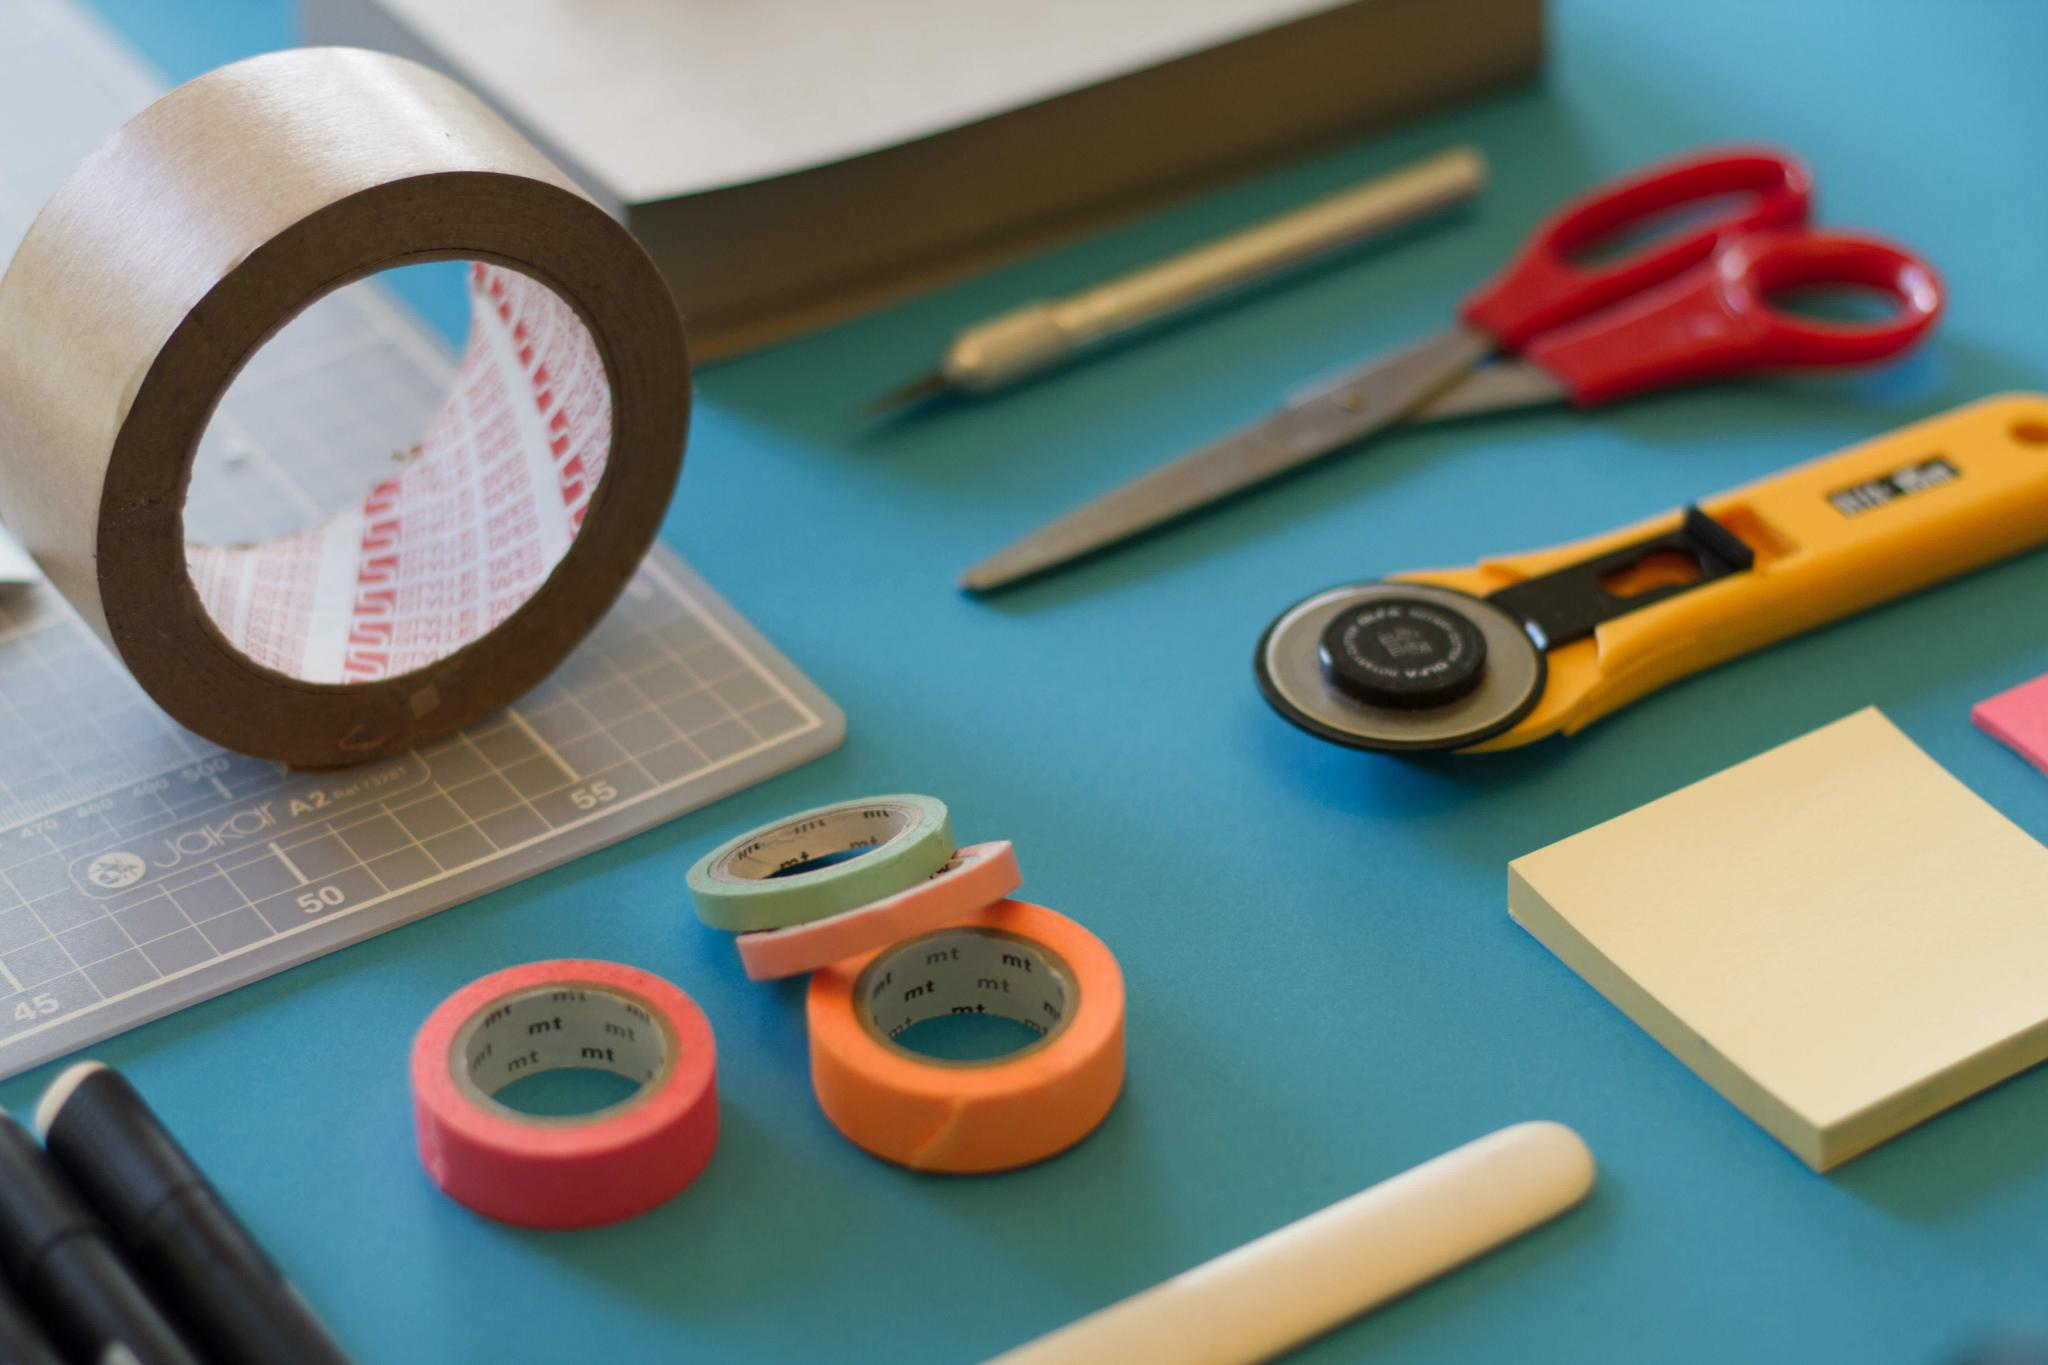 Sticky tape, scissors - things you might need for a handmade project